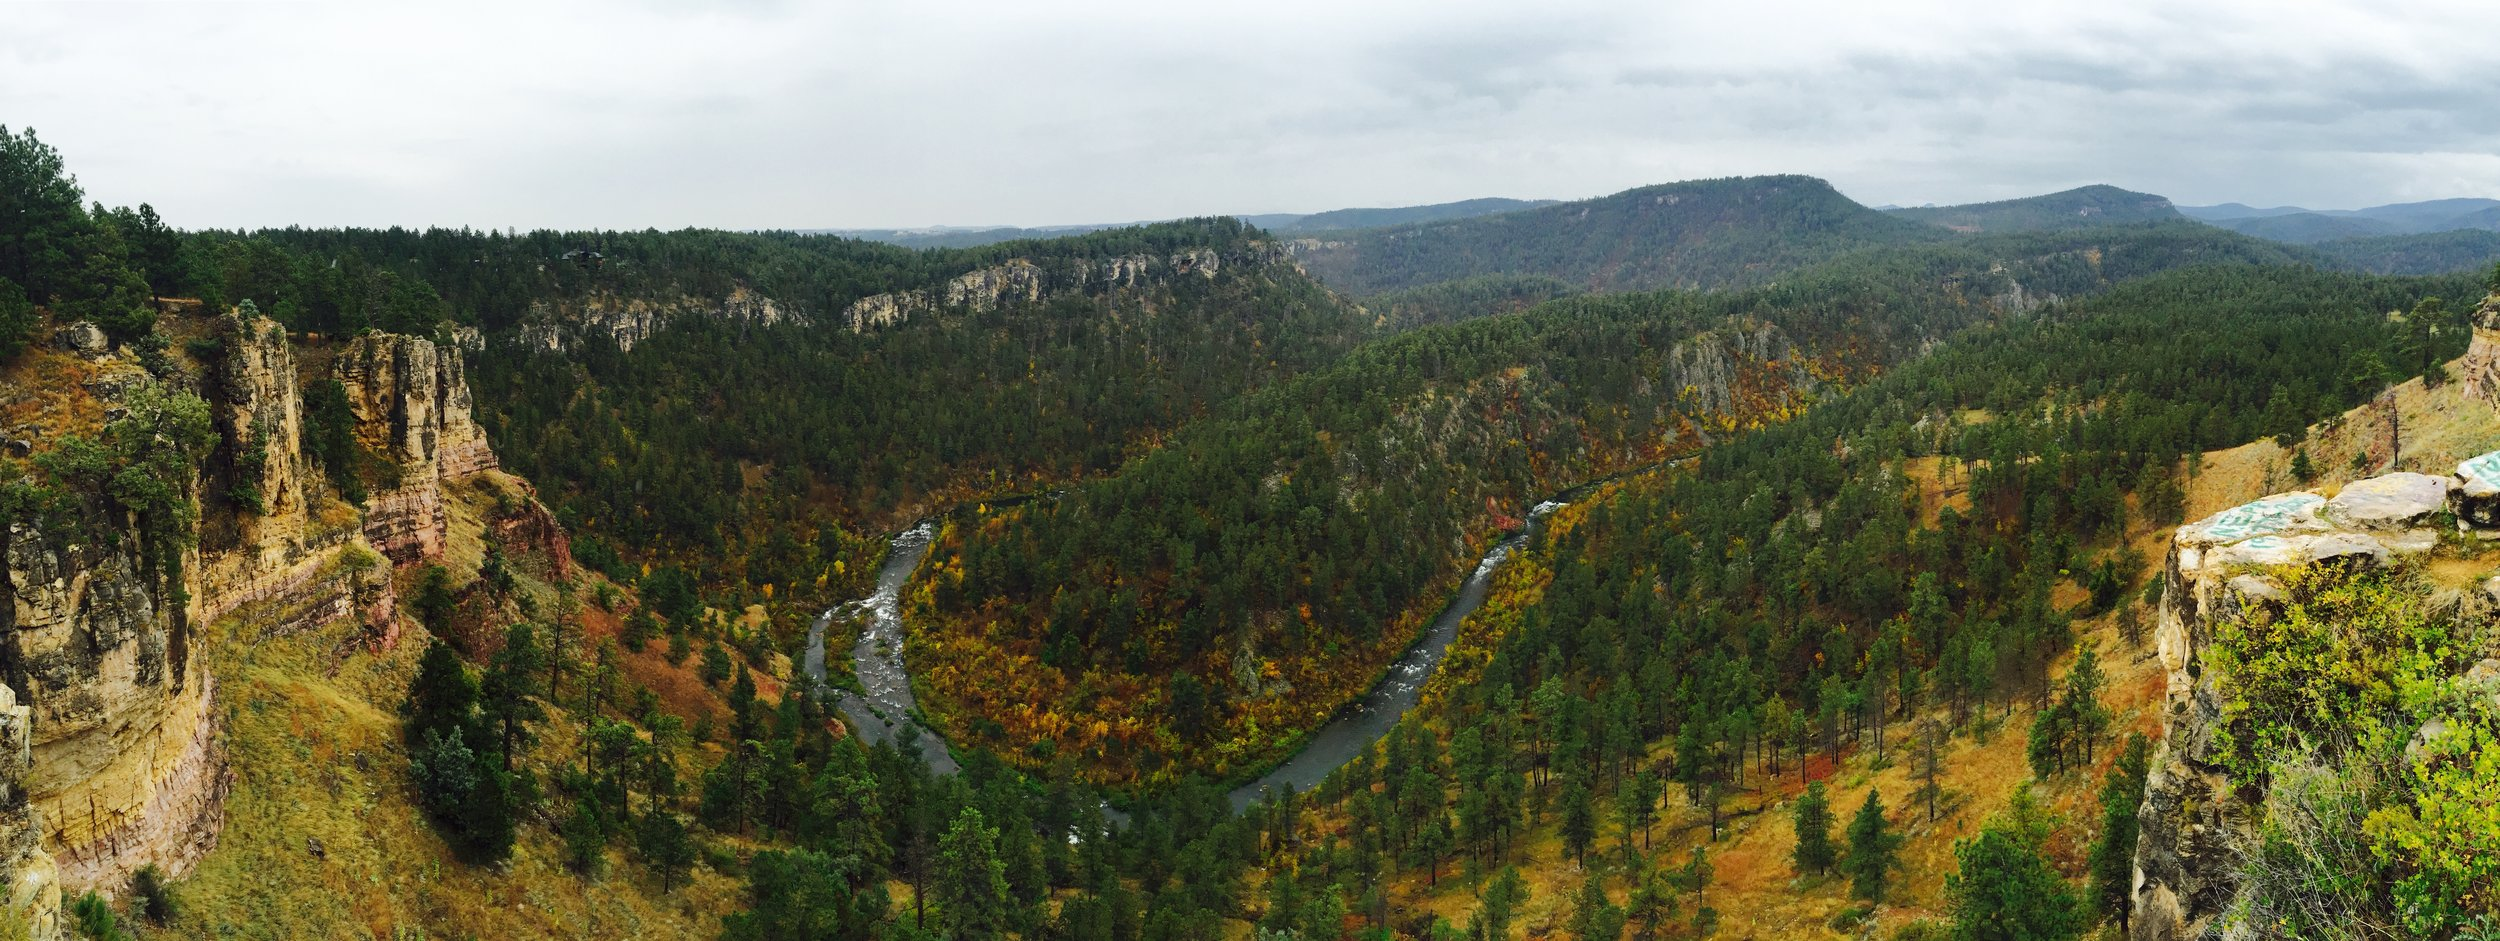 Black Hills Tour - $799.99pp - 80 minutes, 110-120 miles loop